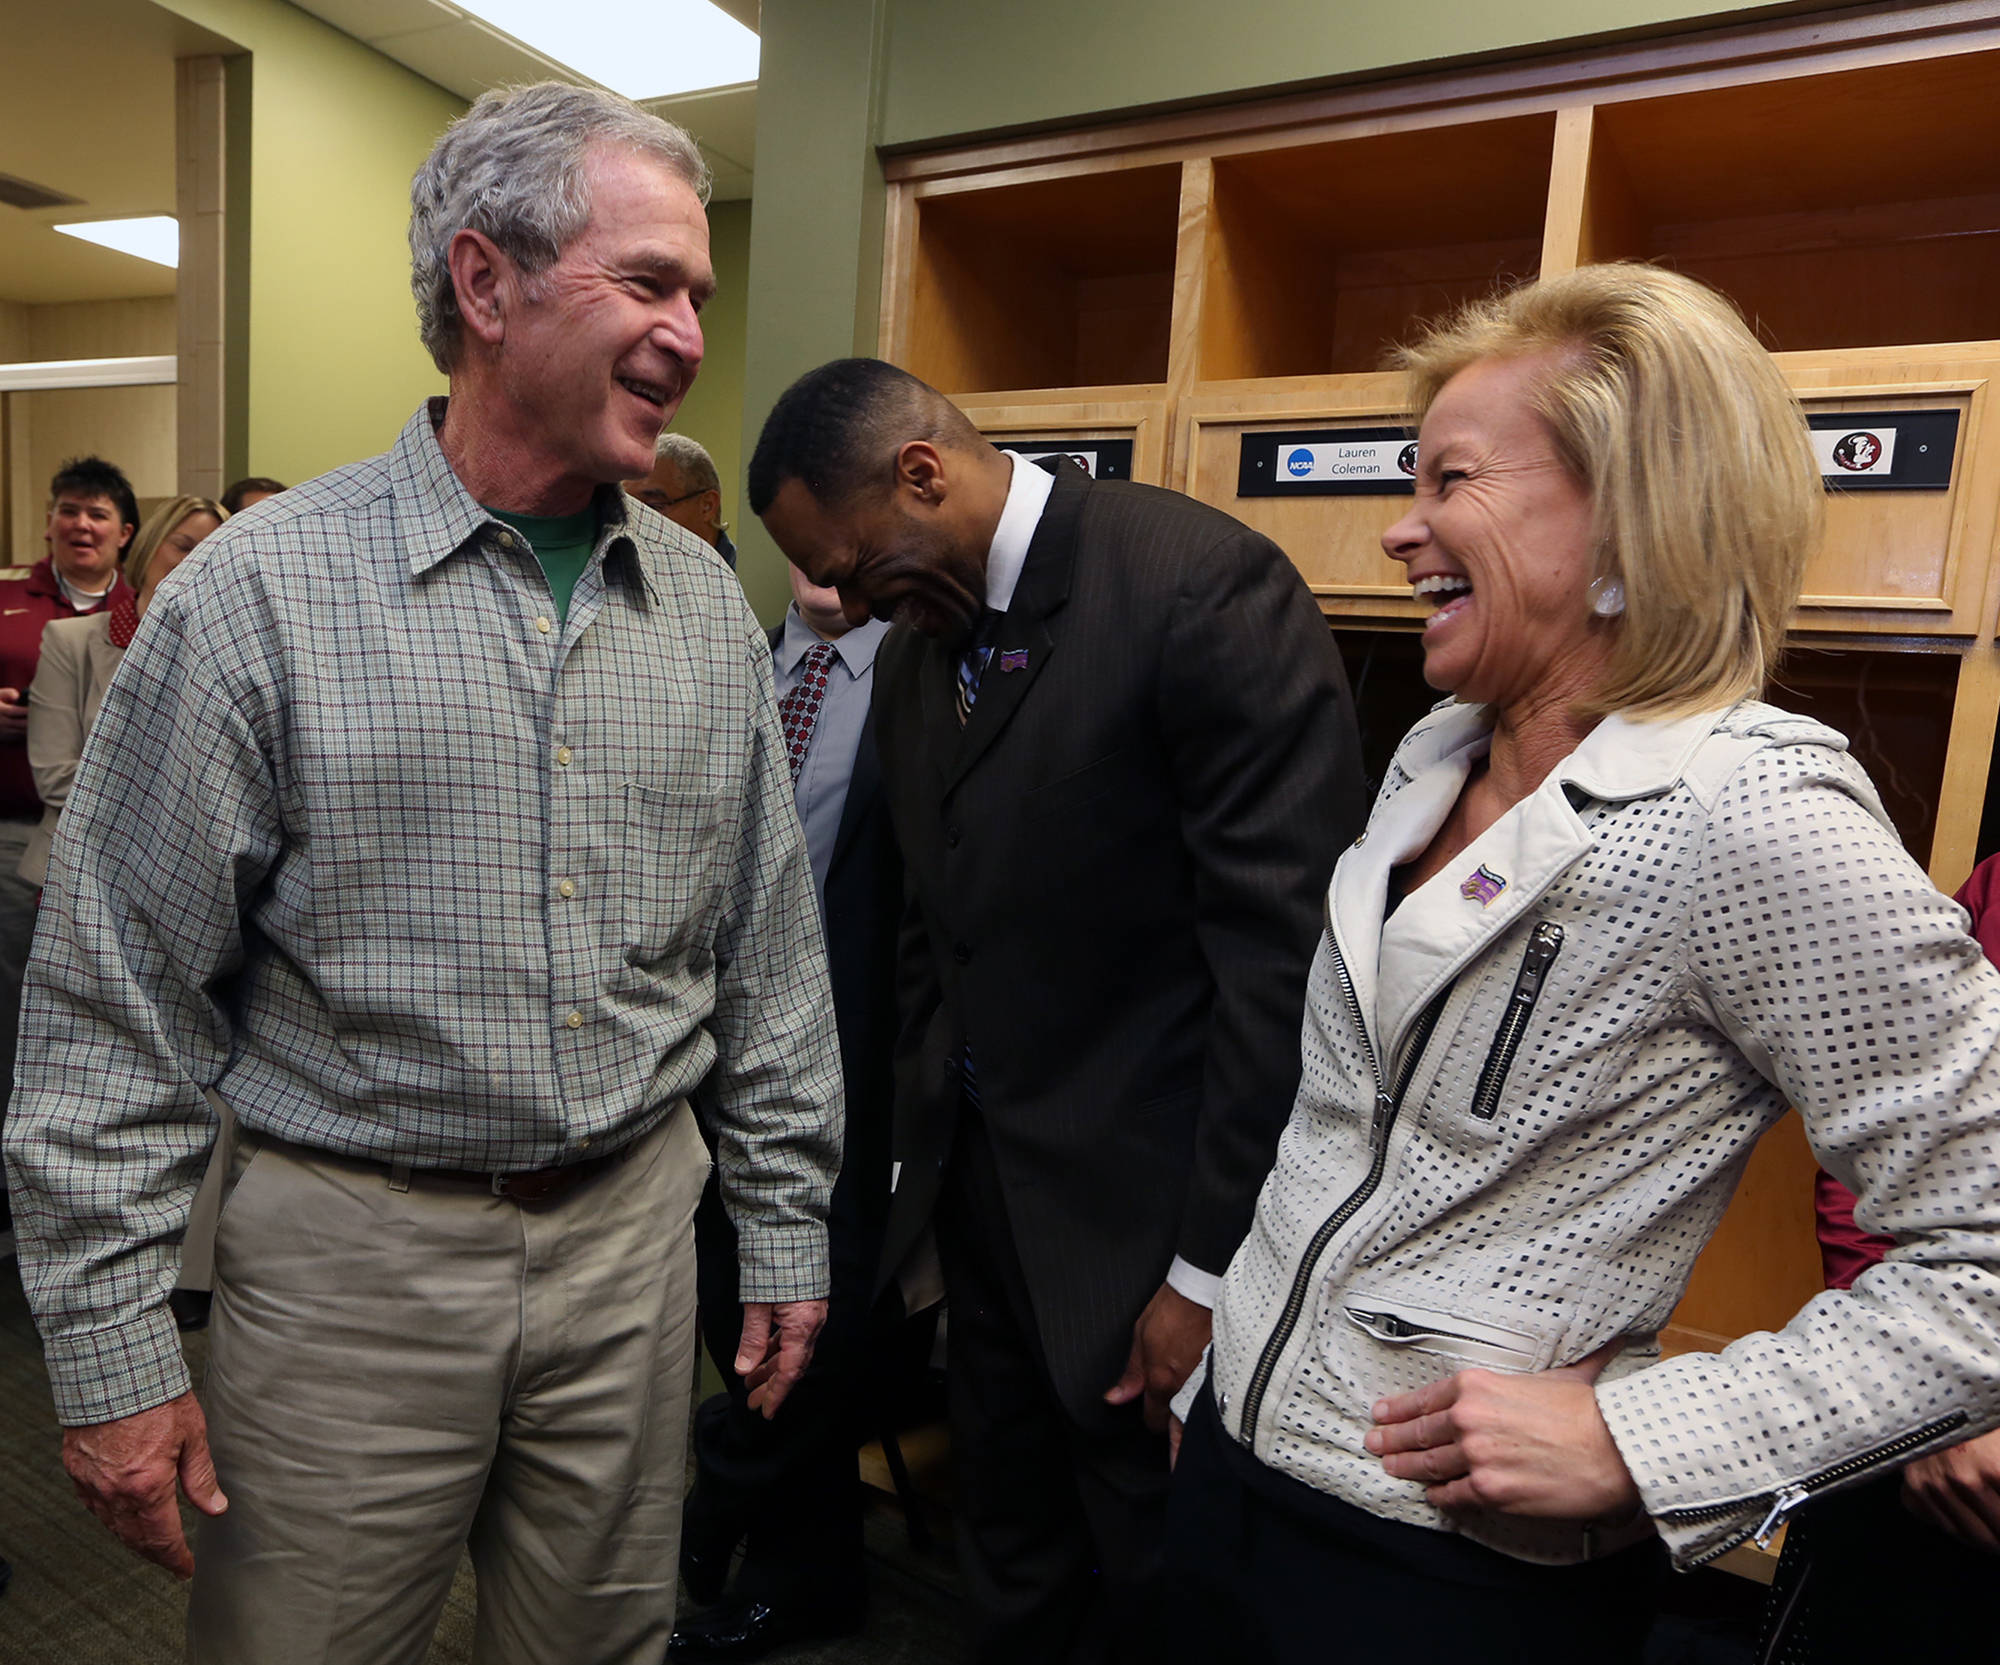 Former President George W. Bush laughs with Florida State University head women's coach Sue Semrau, right before their  NCAA college basketball game against Baylor, Tuesday, March,  26, 2013, in Waco, Texas. (AP Photo/Florida State University, Rod Aydelotte, Pool)